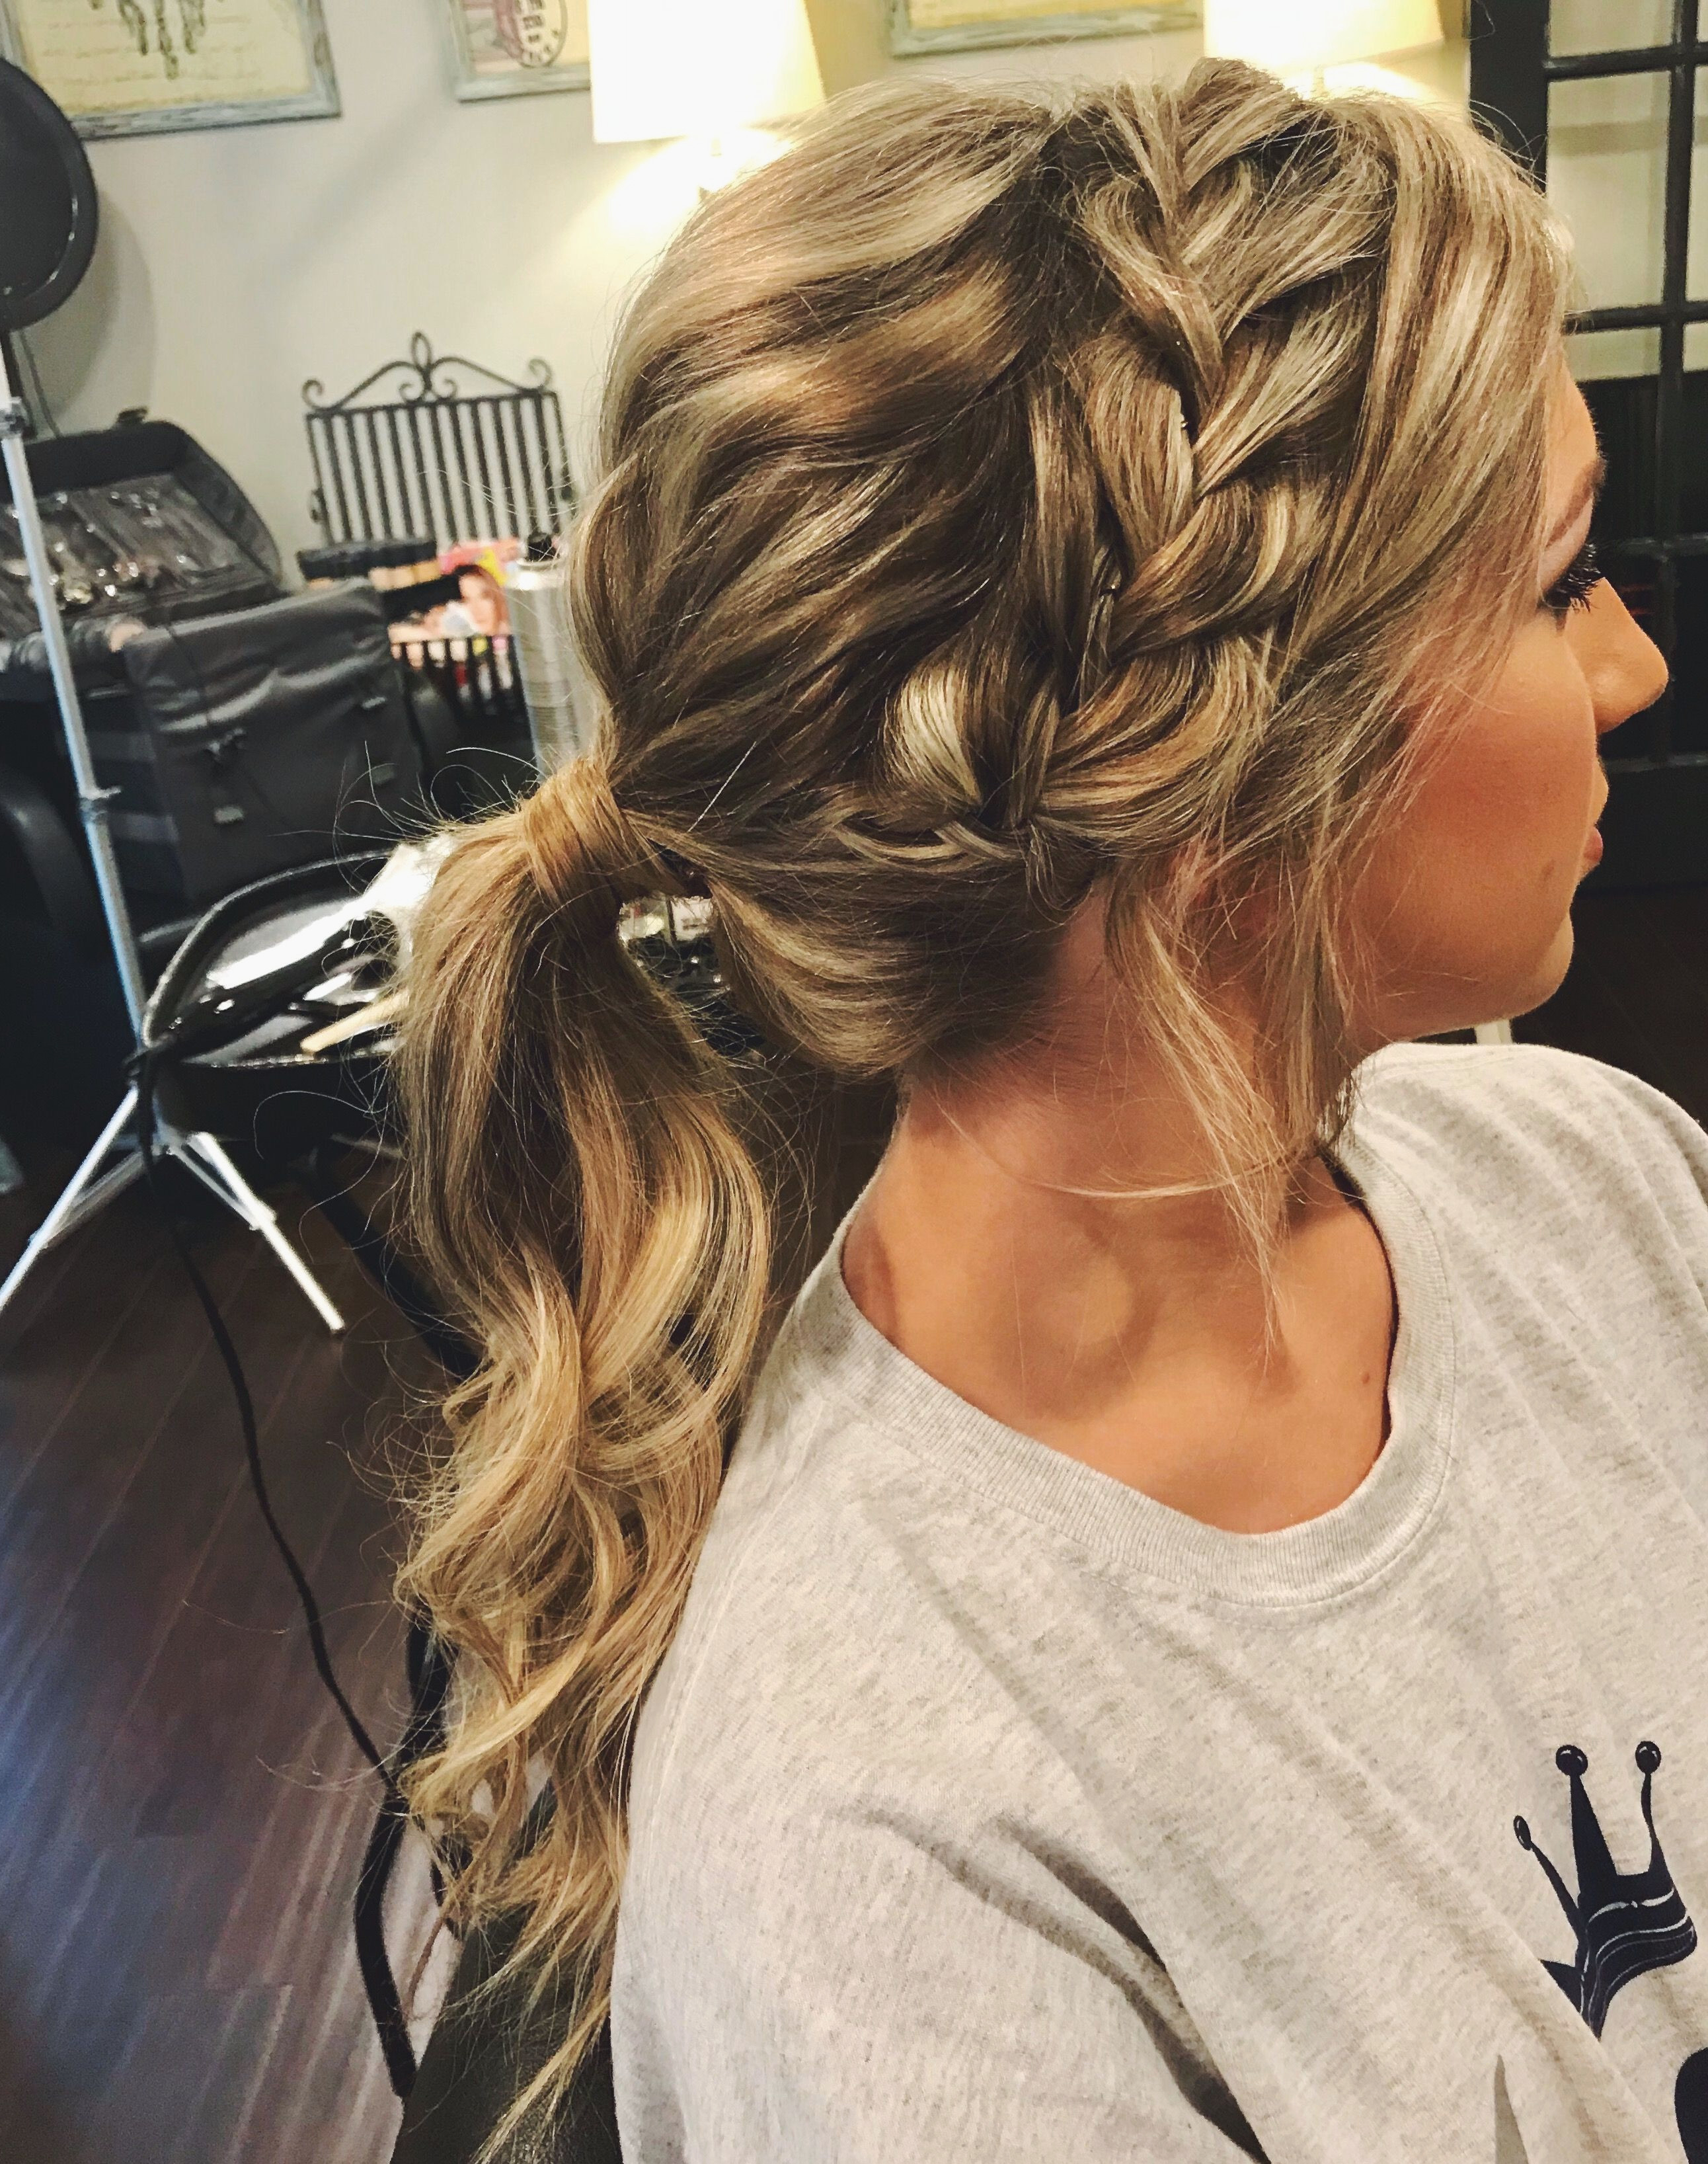 Braid Prom Hairstyles Lovely Lovely Twist Hairstyles For Long Hair Throughout Most Popular Twisting Braided Prom Updos (View 6 of 20)